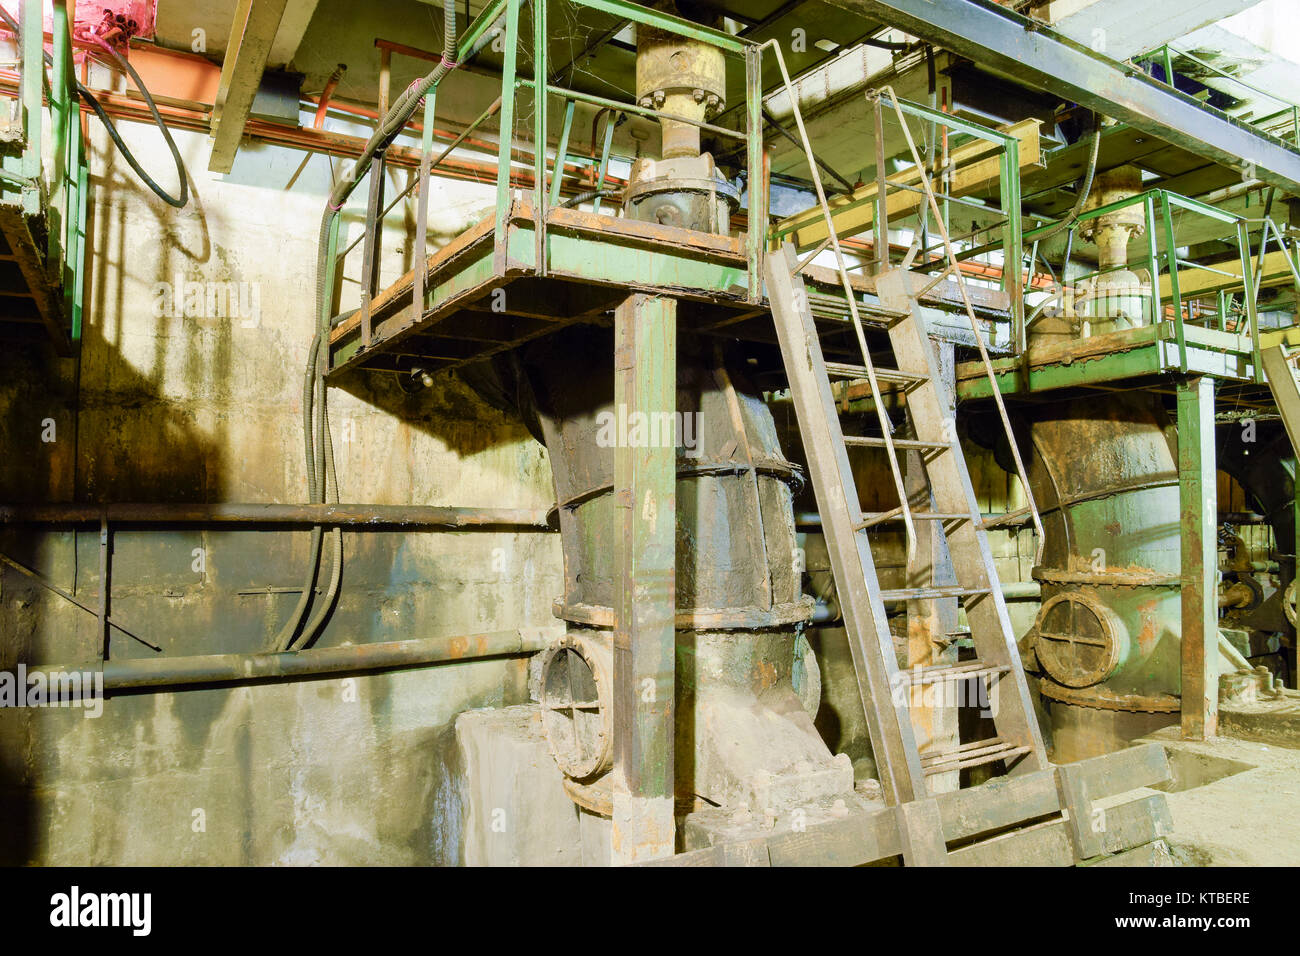 Basement of a water pumping station. Abandoned post-apocalyptic - Stock Image